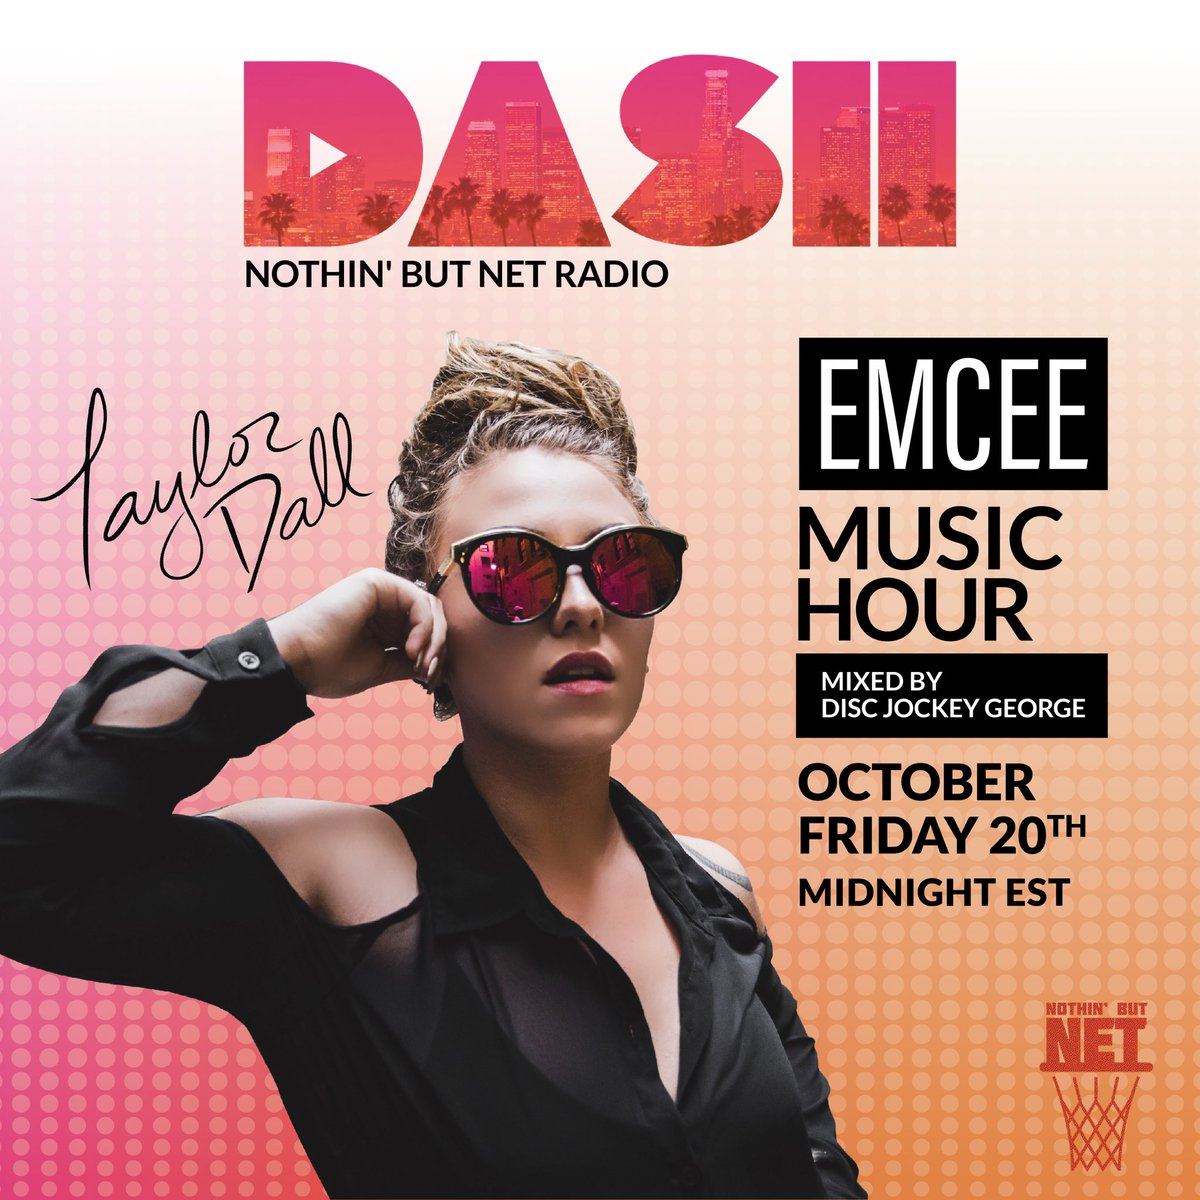 Debuting tonight on @dash_radio #nothingbutnet @emceenetwork @lildallface https://t.co/1UYVx6NTMf